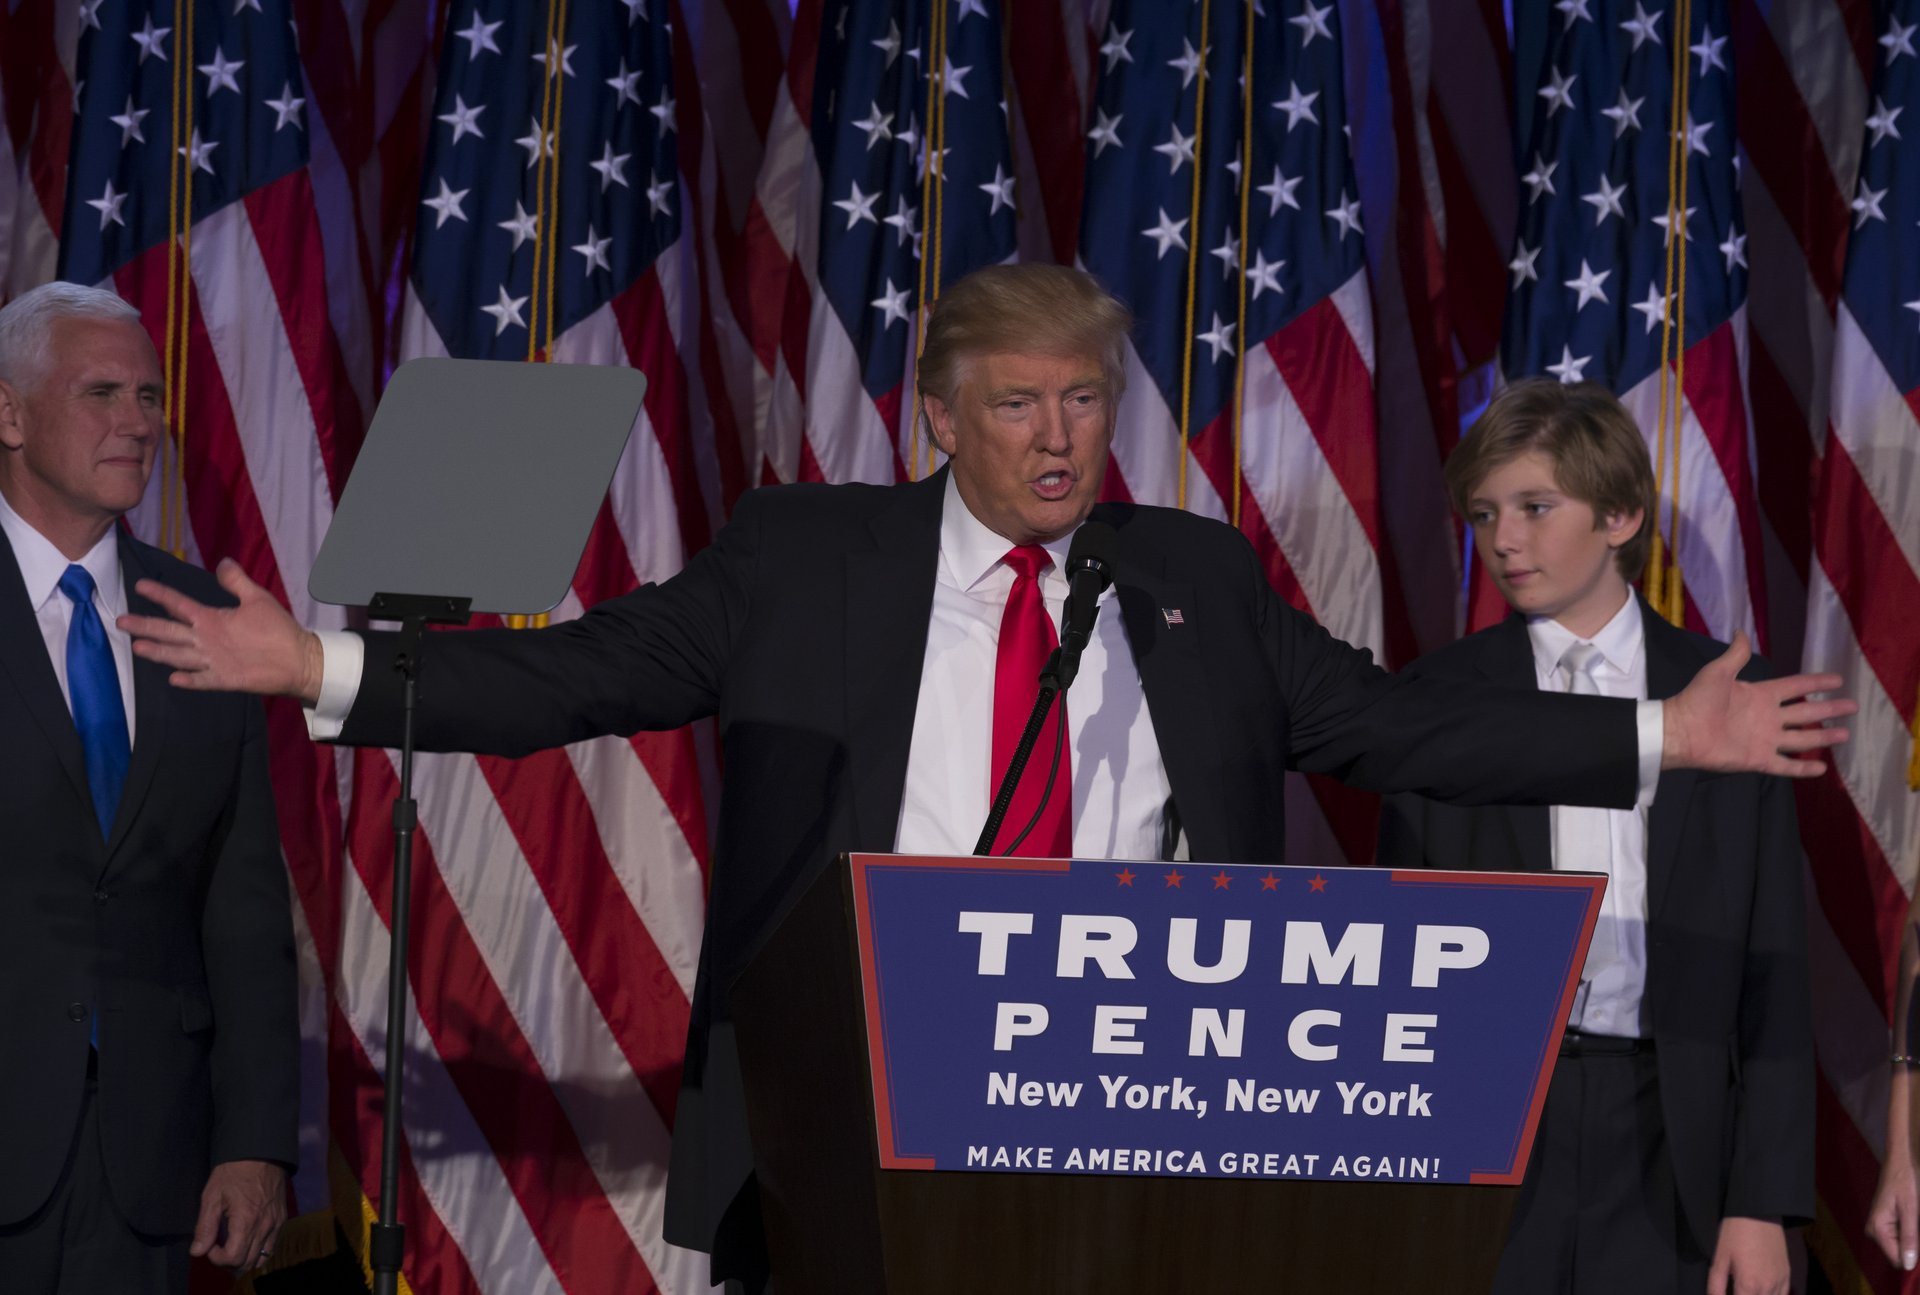 Donald Trump speaks at a New York victory party after winning the election November 8, 2016.